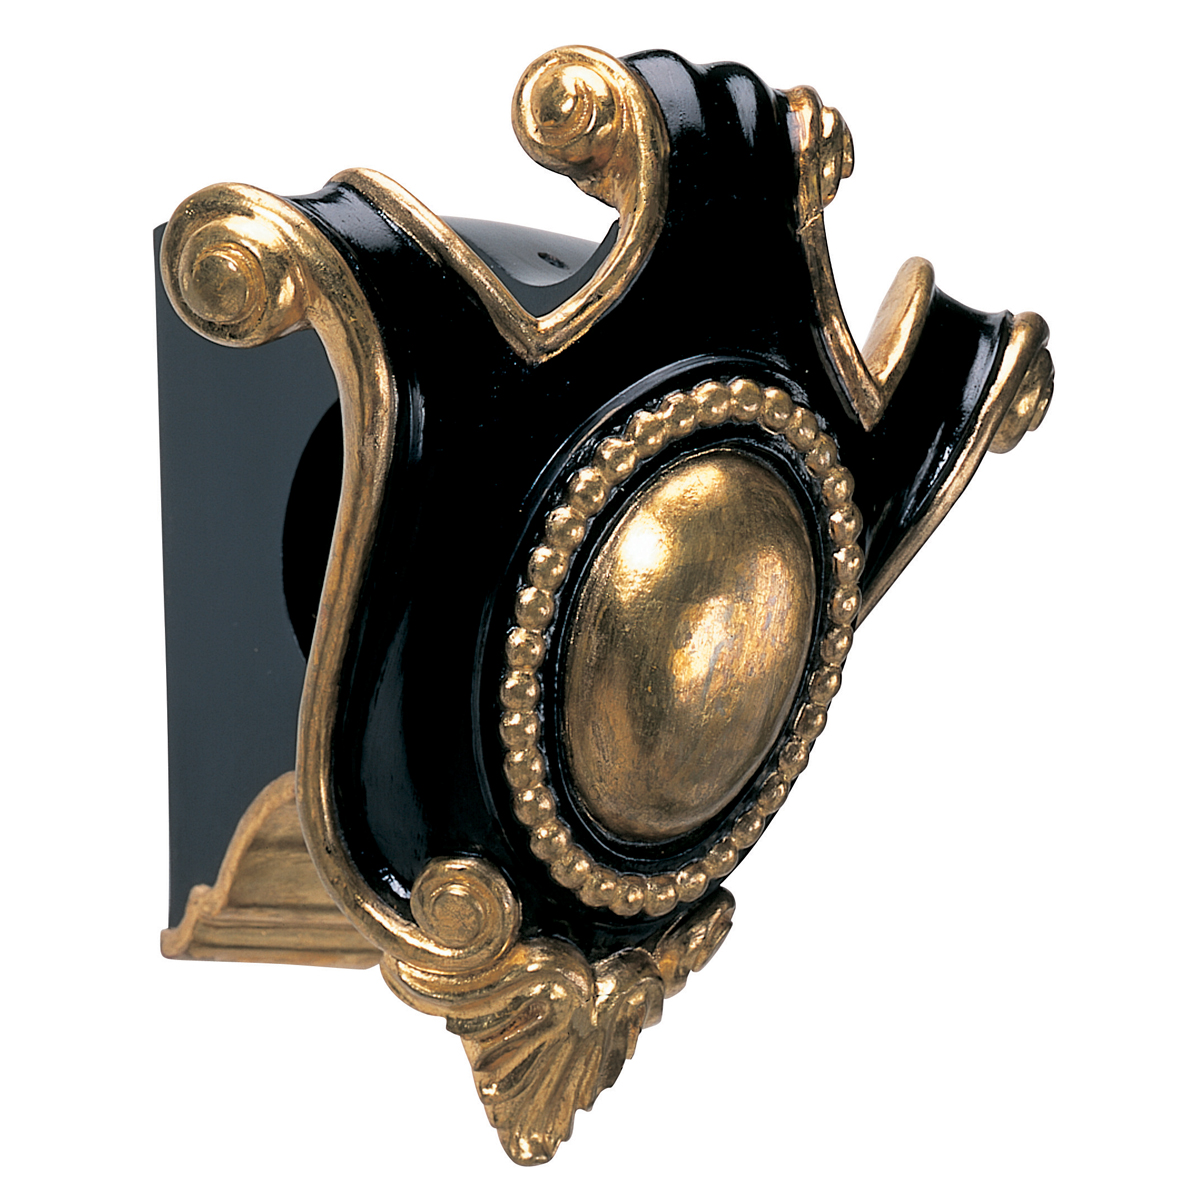 Cartouche bracket, black and Water Gilt Gold Leaf